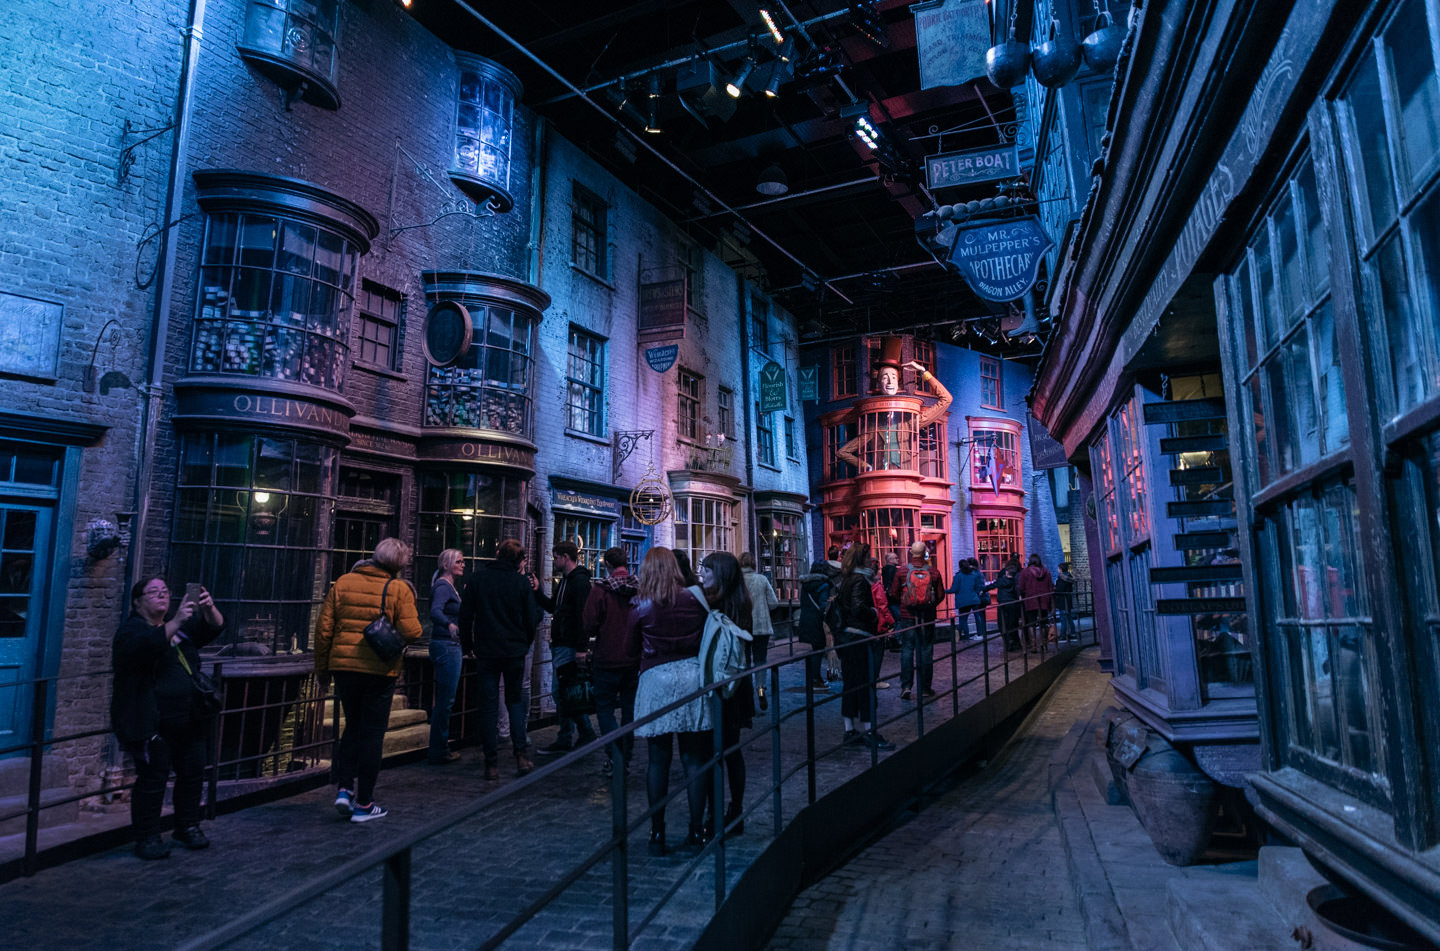 Blog-Mode-And-The-City-Lifestyle-Visite-Studios-Harry-Potter-Londres-14